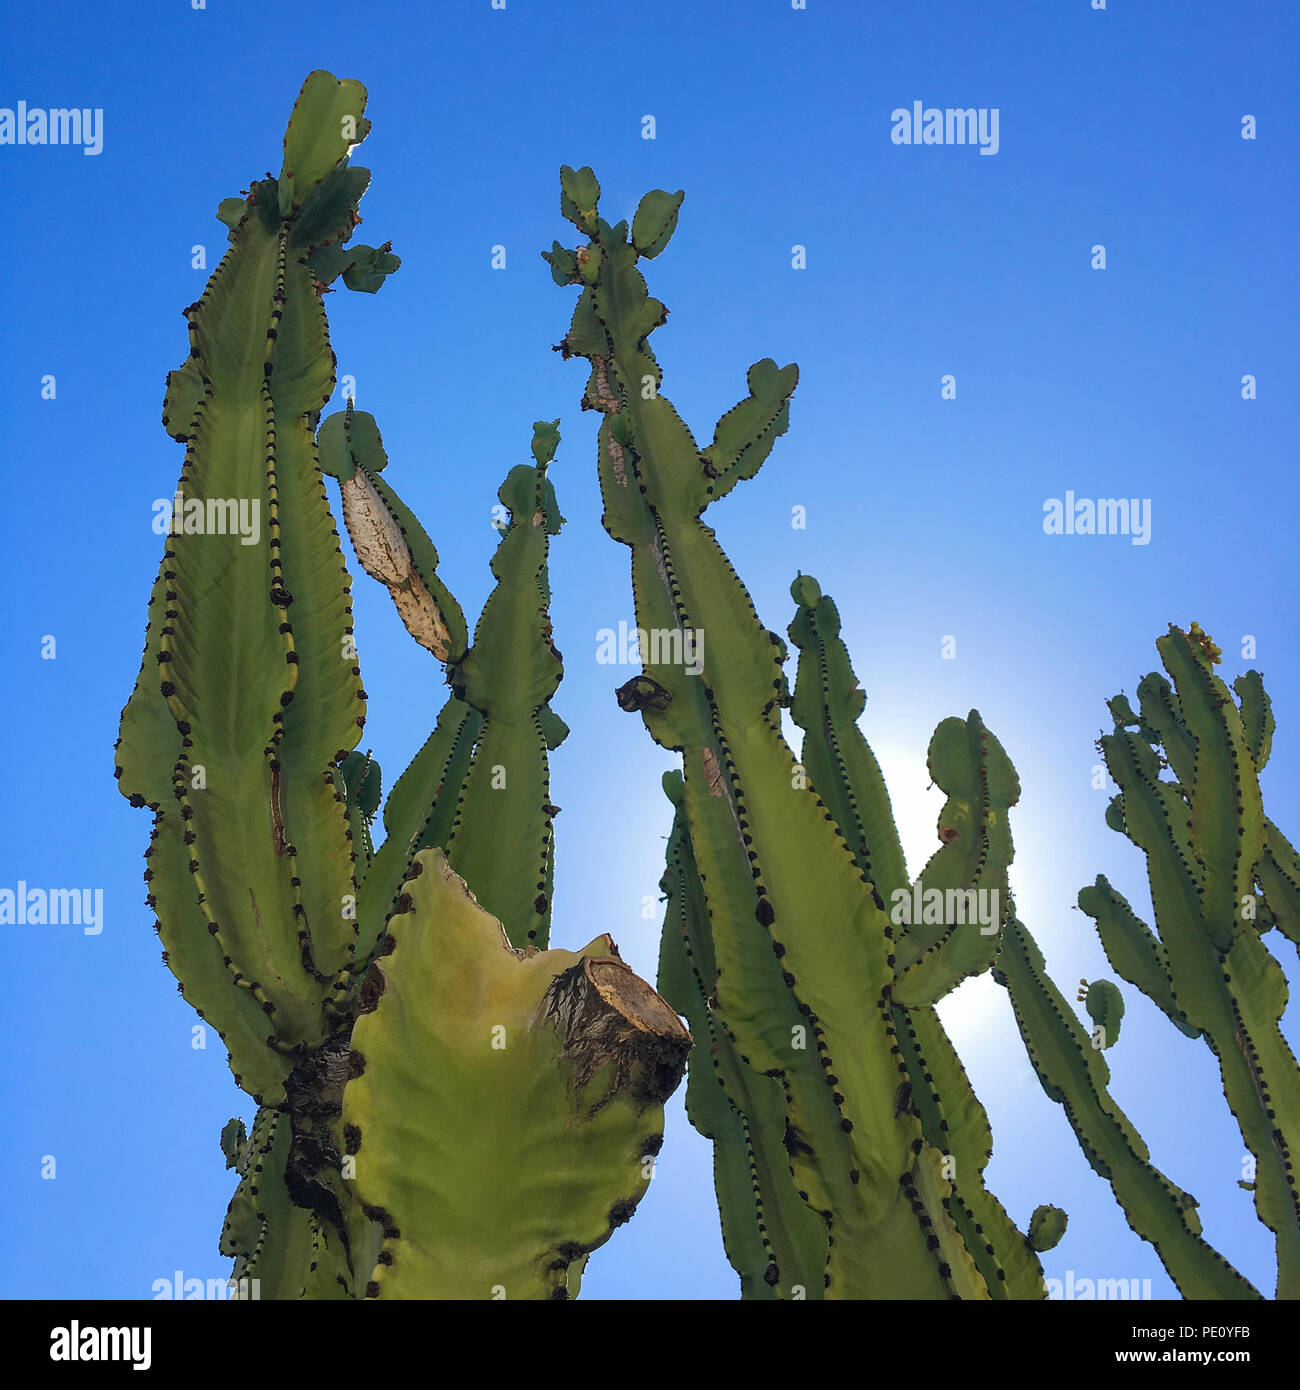 Low Angle View Of Cereus Peruvianus tree succulents over a blue sky. Column cactus succulent garden with copy space. - Stock Photo